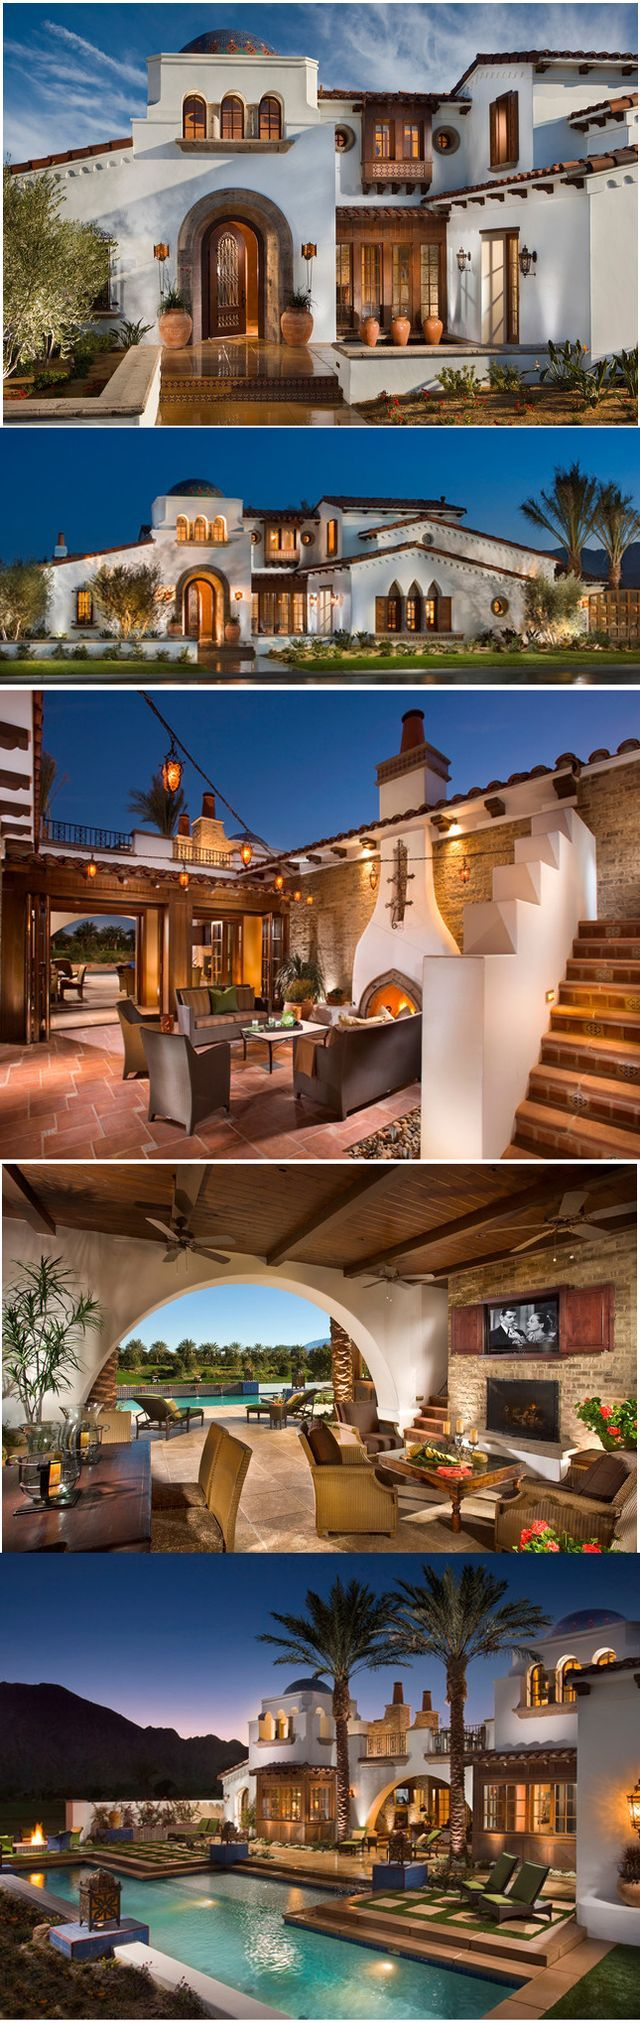 Amazeballs Getaway And Home Genius Open Spaced Design And Lush Spanish Mediterranean Style Interior Design Spanish Style Homes Spanish House Spanish Style